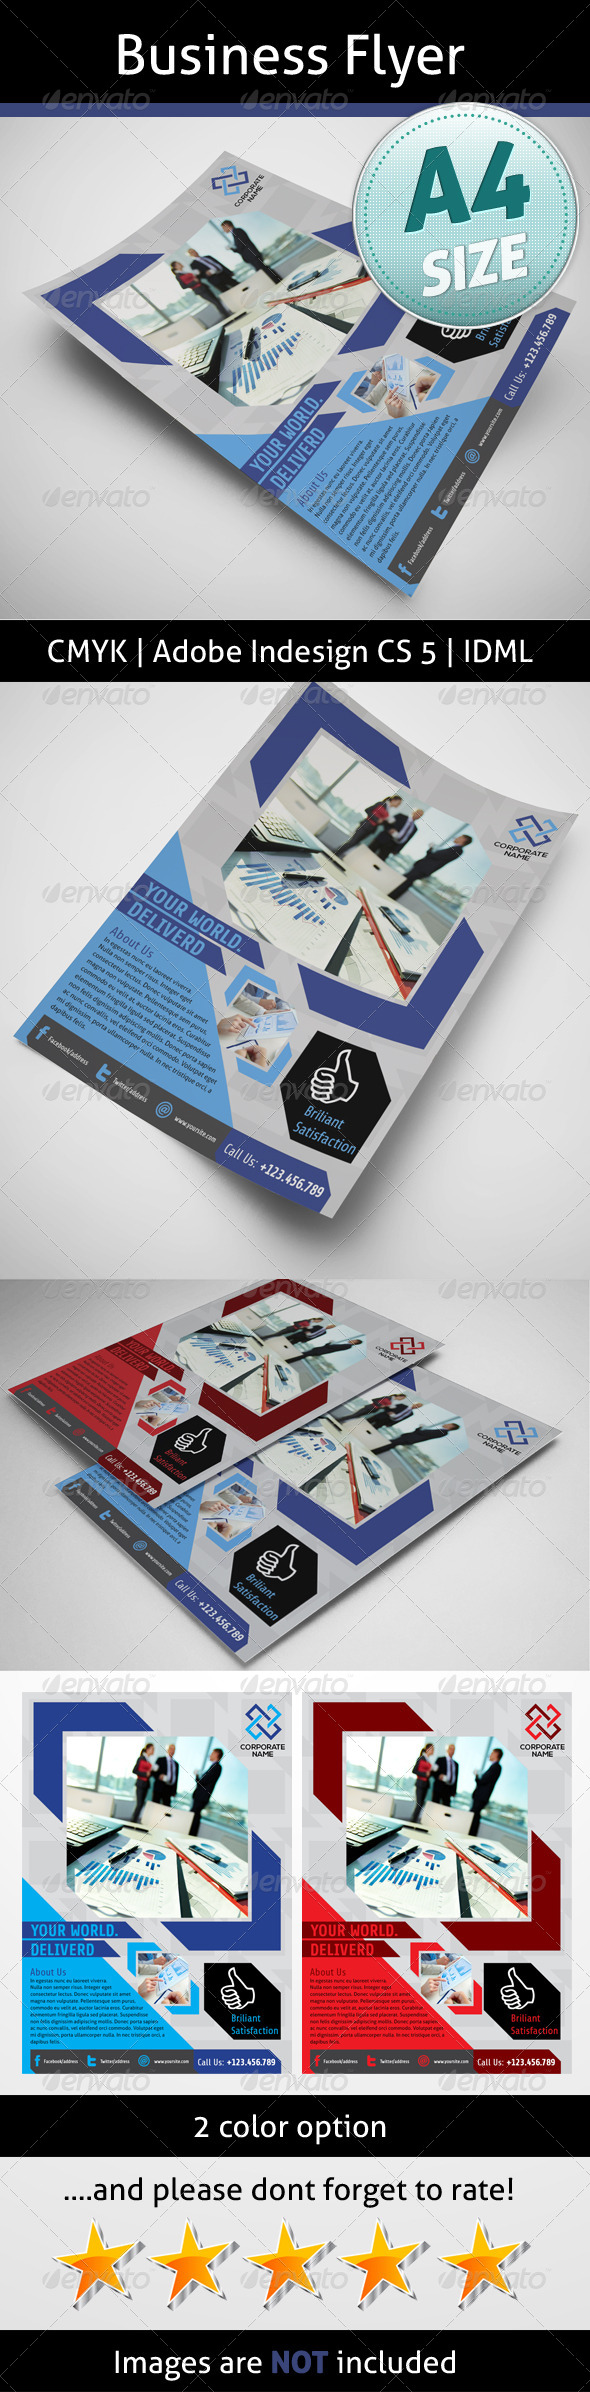 GraphicRiver Business Flyer 5142154